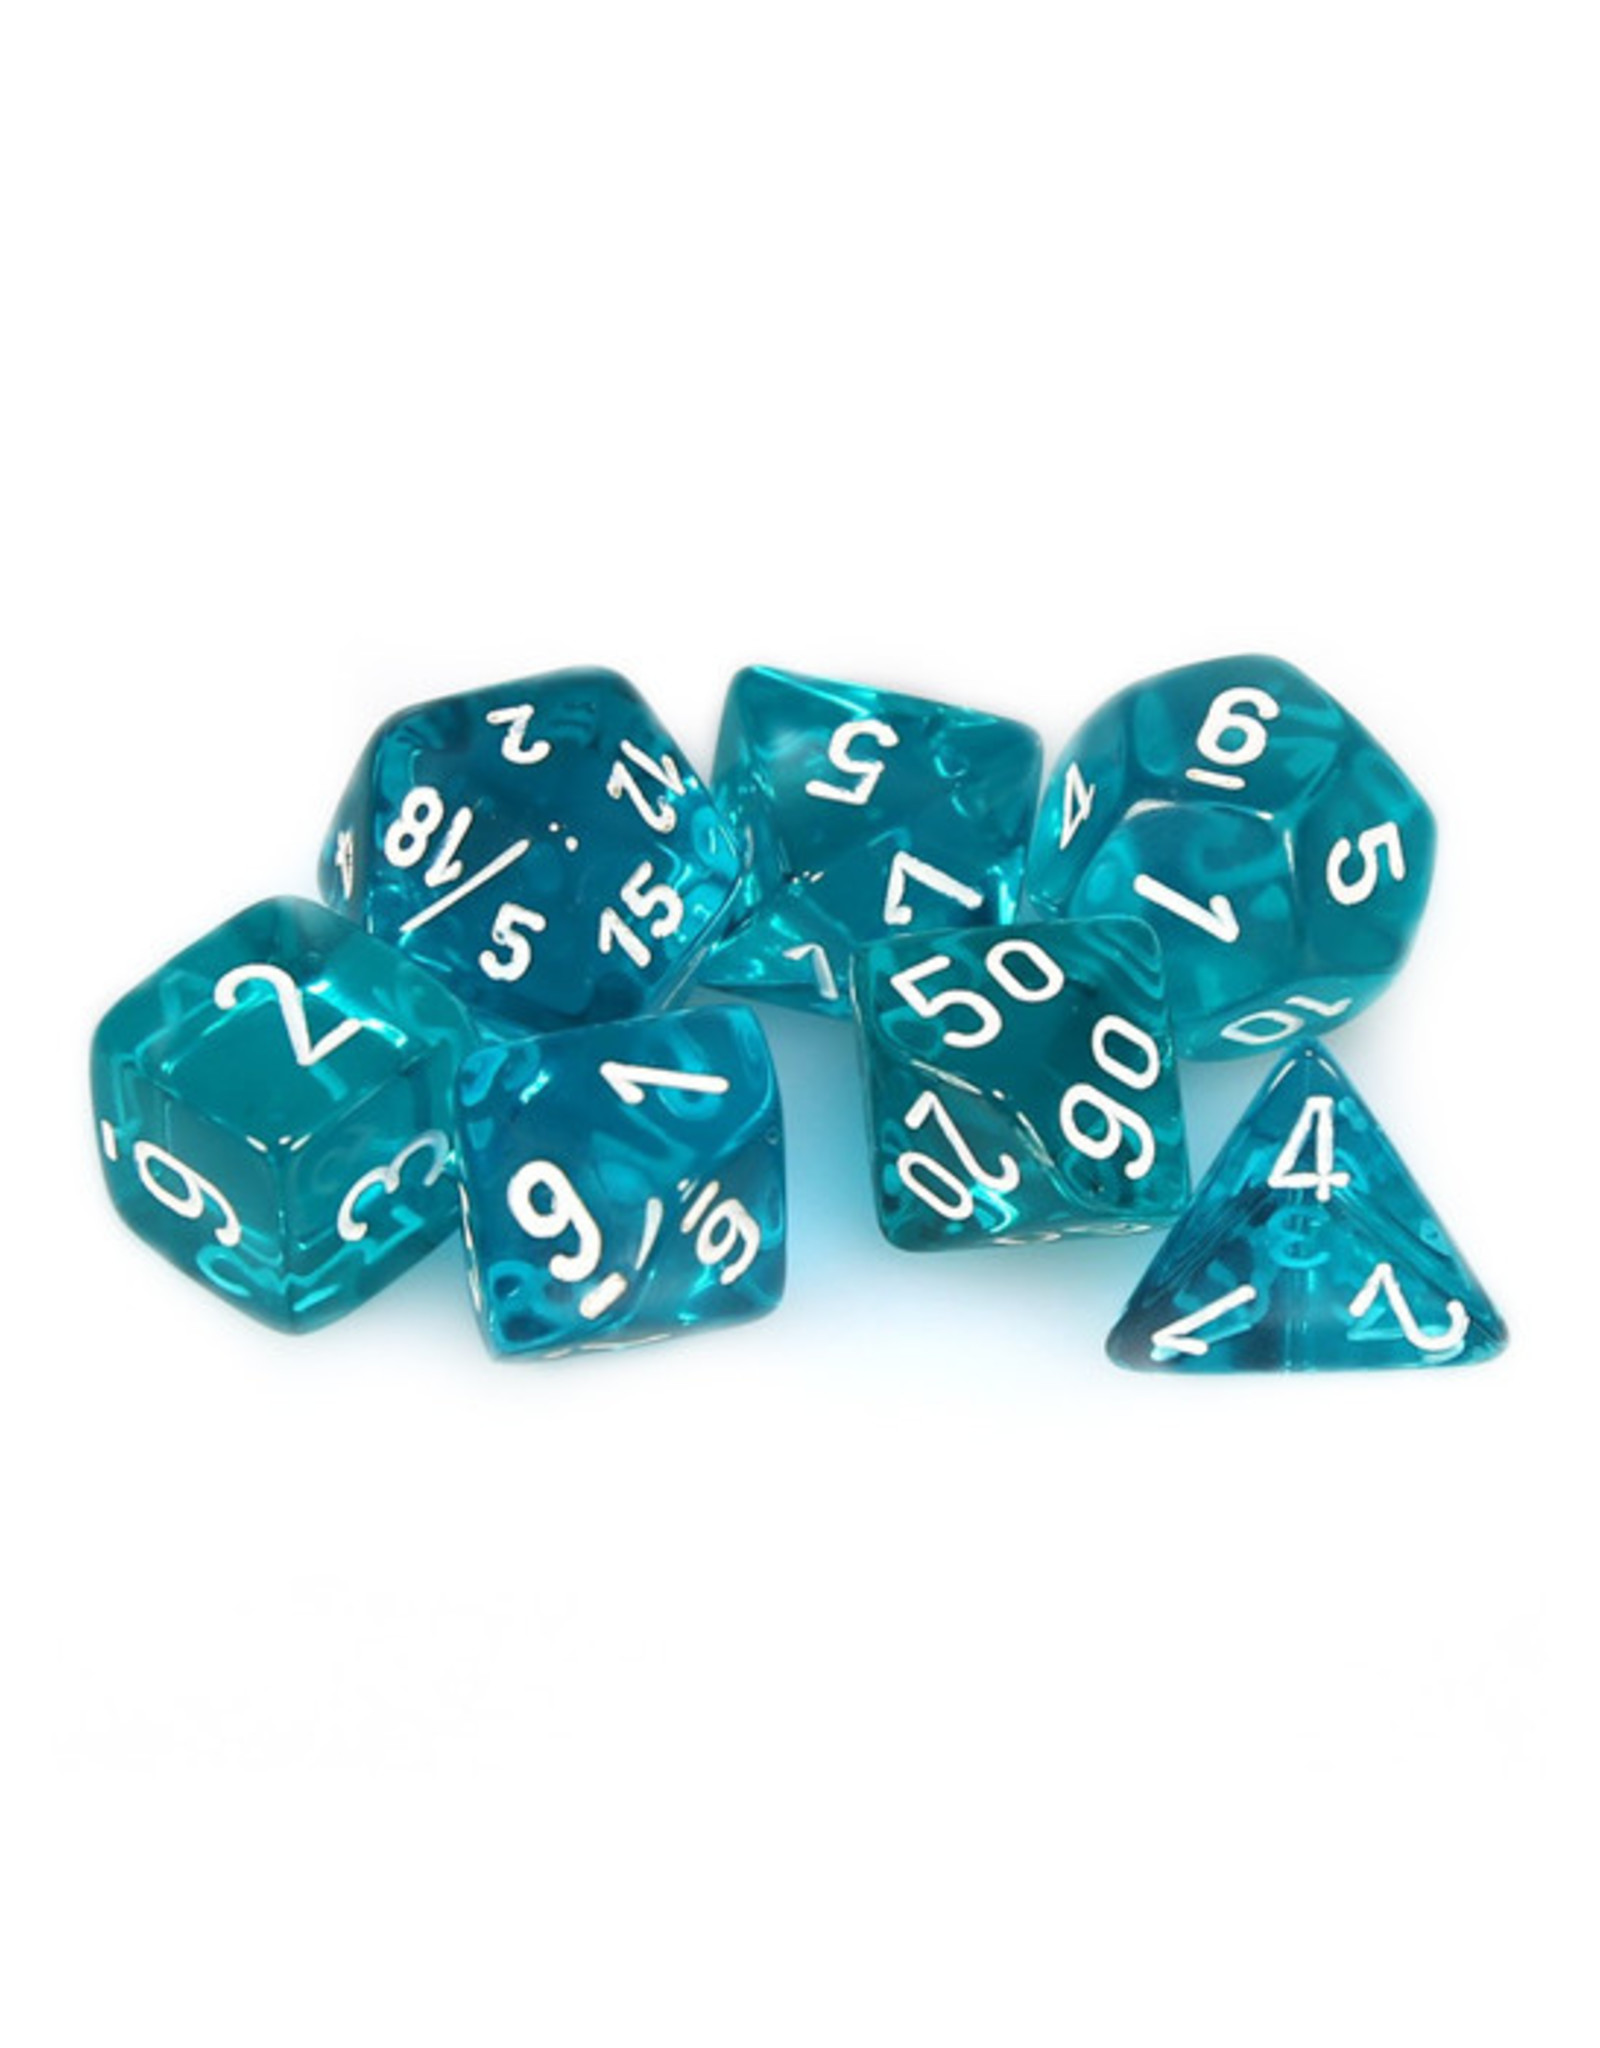 Chessex Chessex: Poly 7 Set - Translucent - Teal w/ White